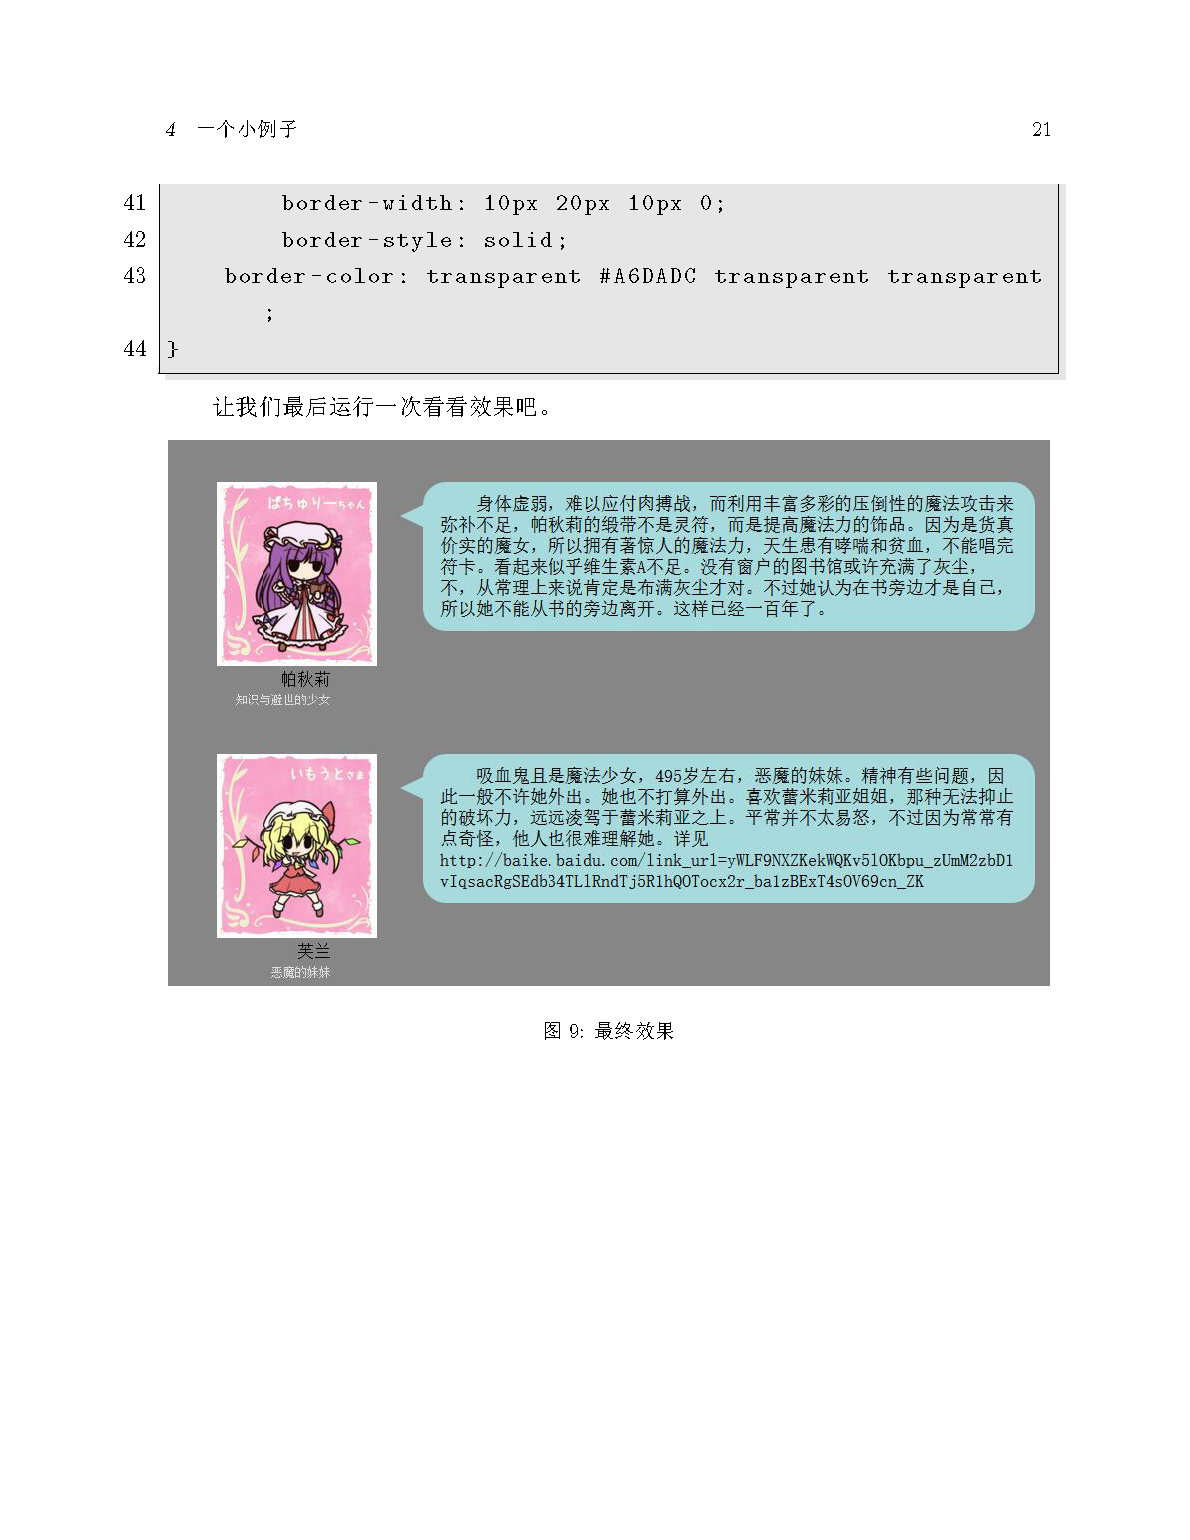 HTML5与CSS3_页面_21.png